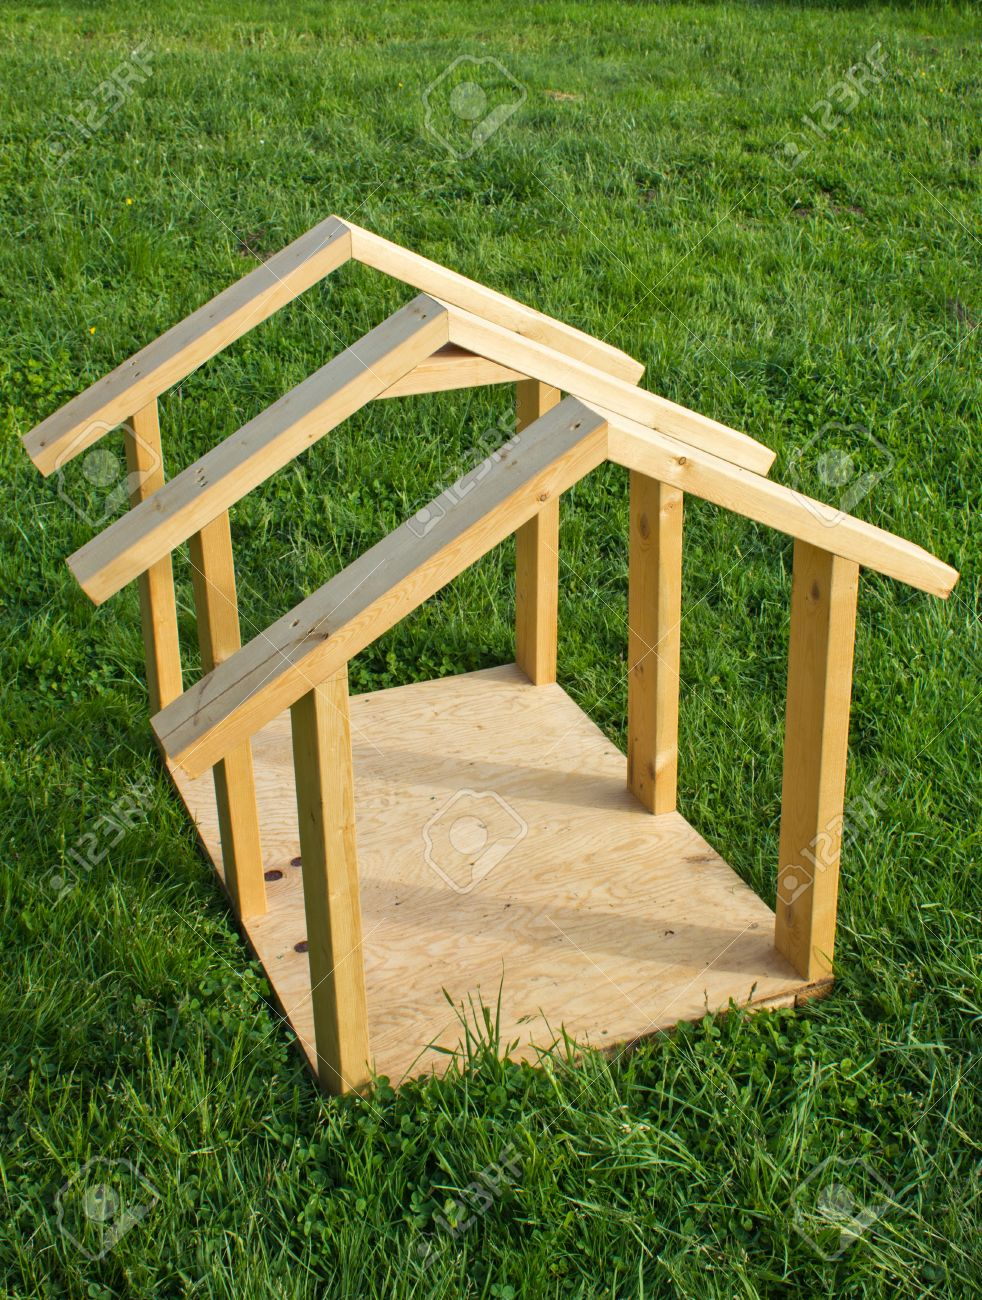 Building Small Dog House With Lumber, Frame Completed Stock Photo ...